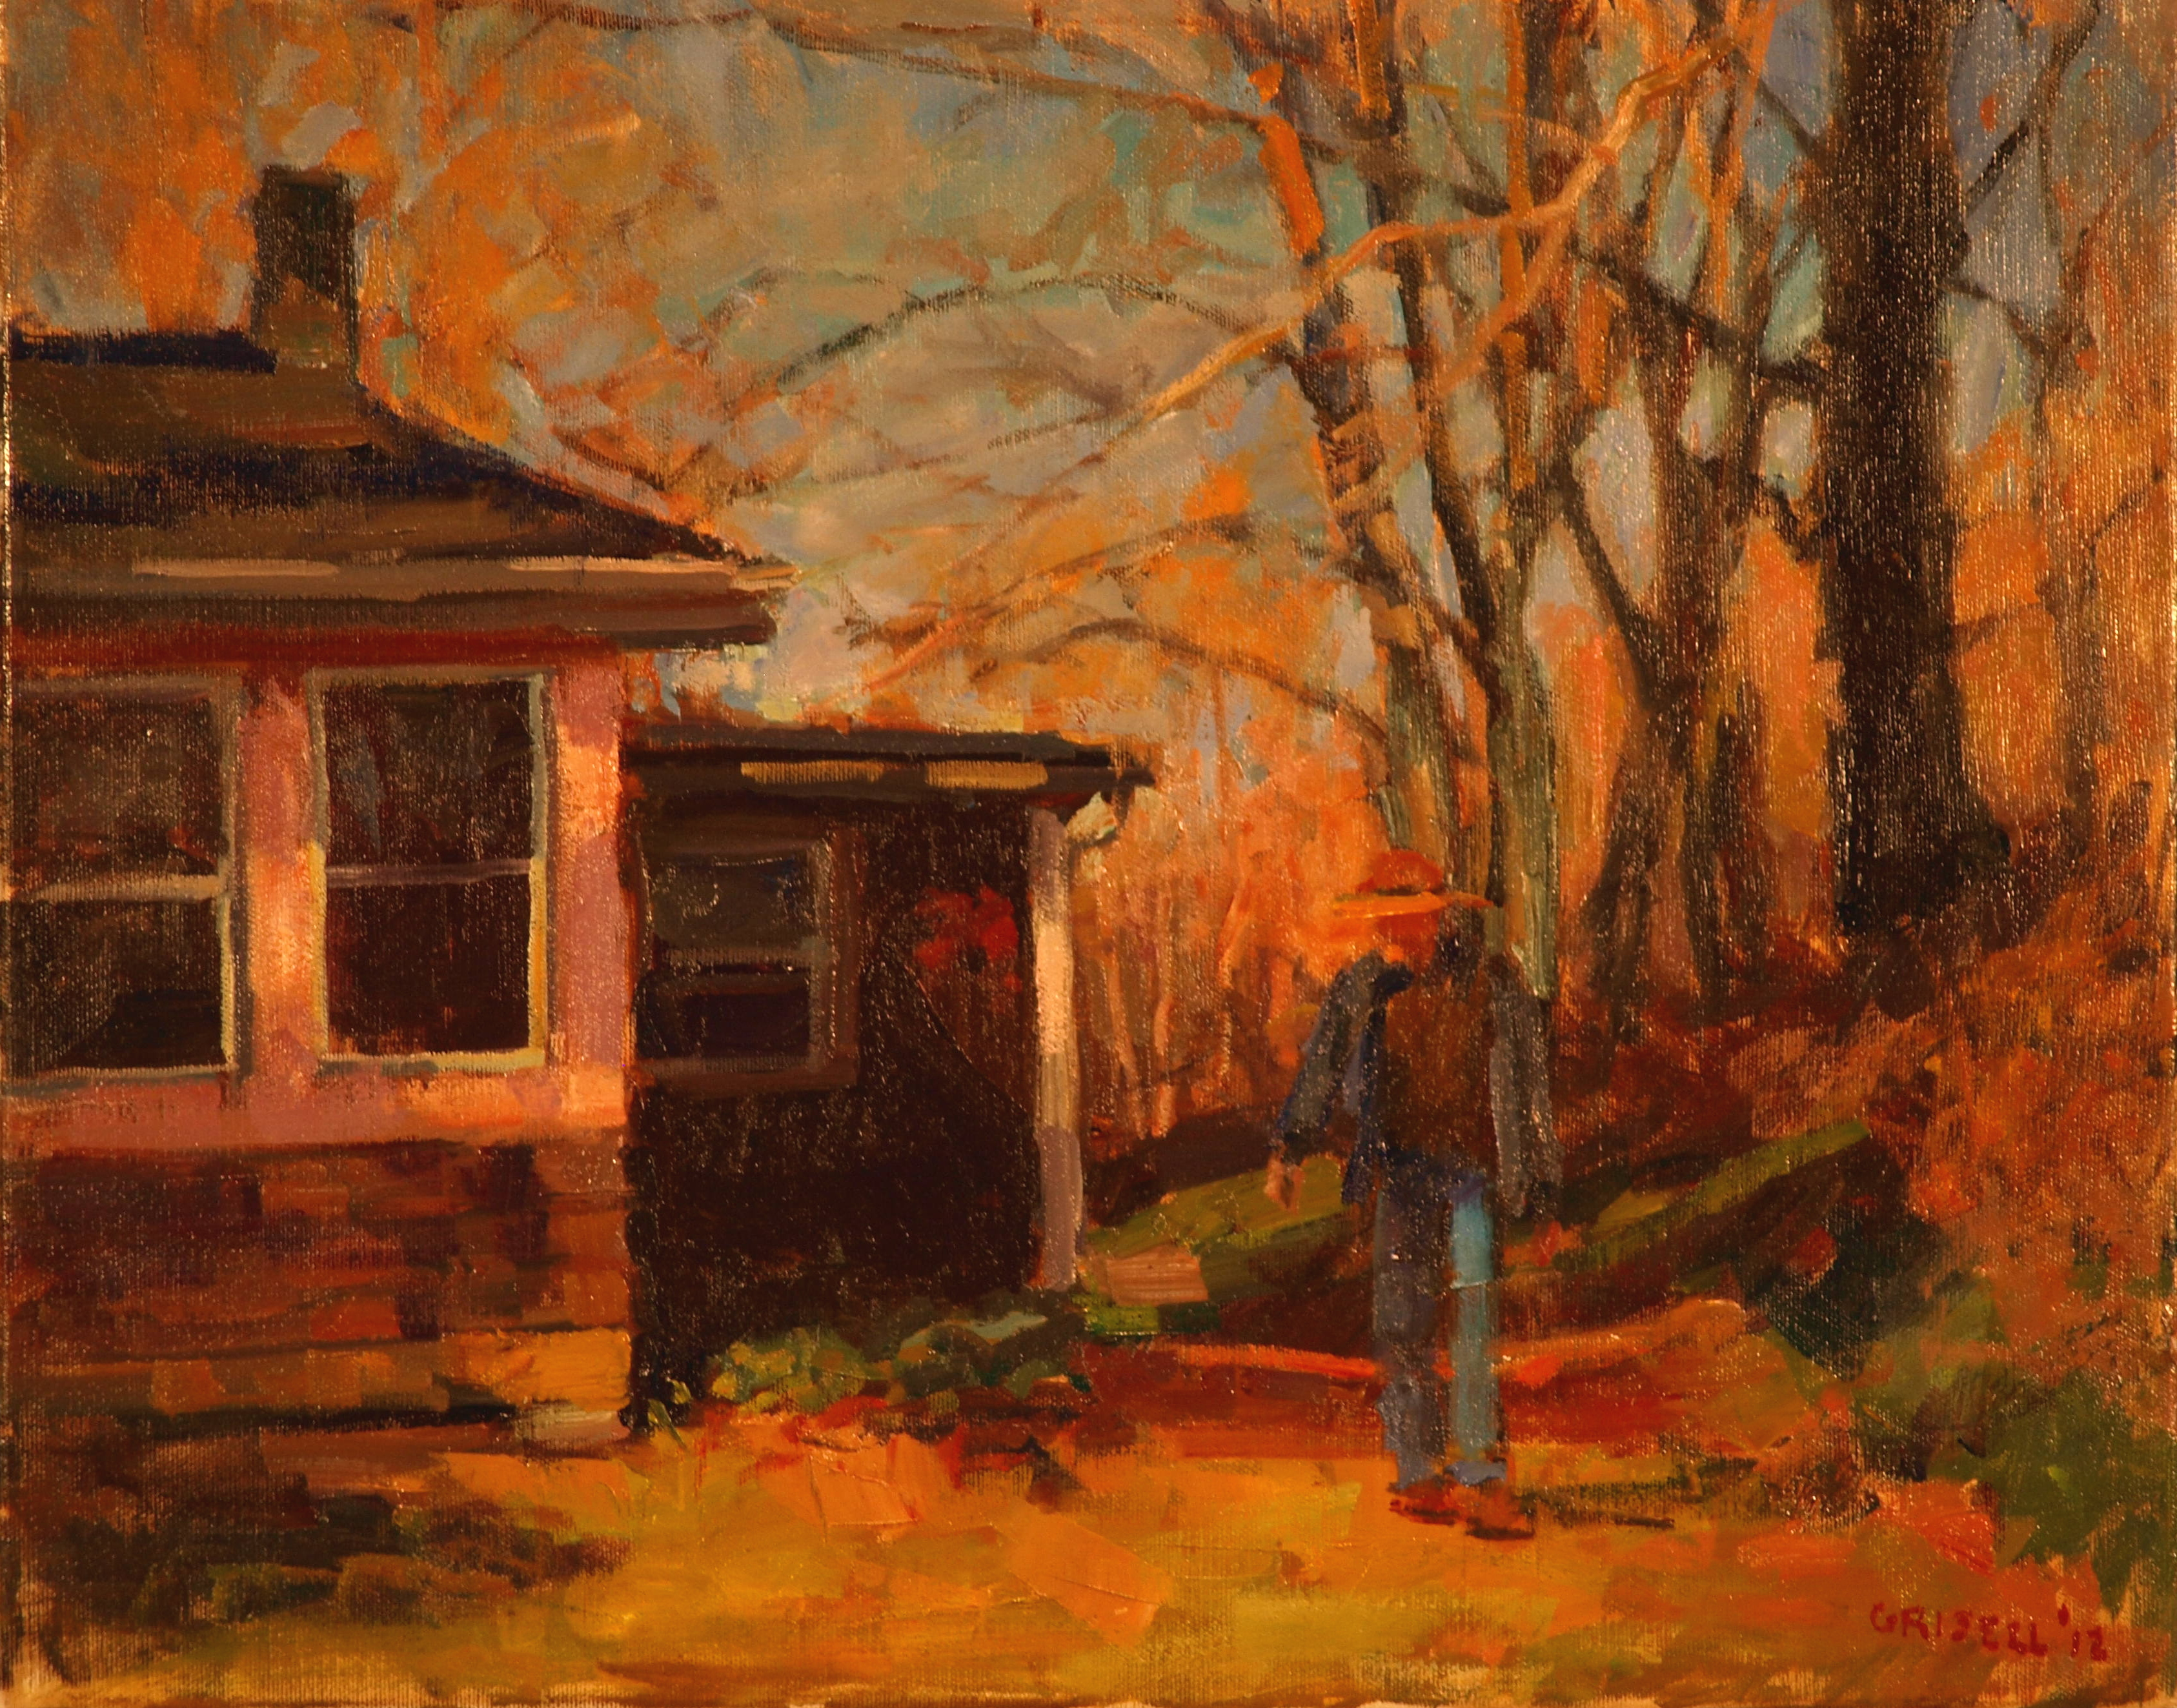 The Back Yard, Oil on Canvas, 16 x 20 Inches, by Susan Grisell, $450